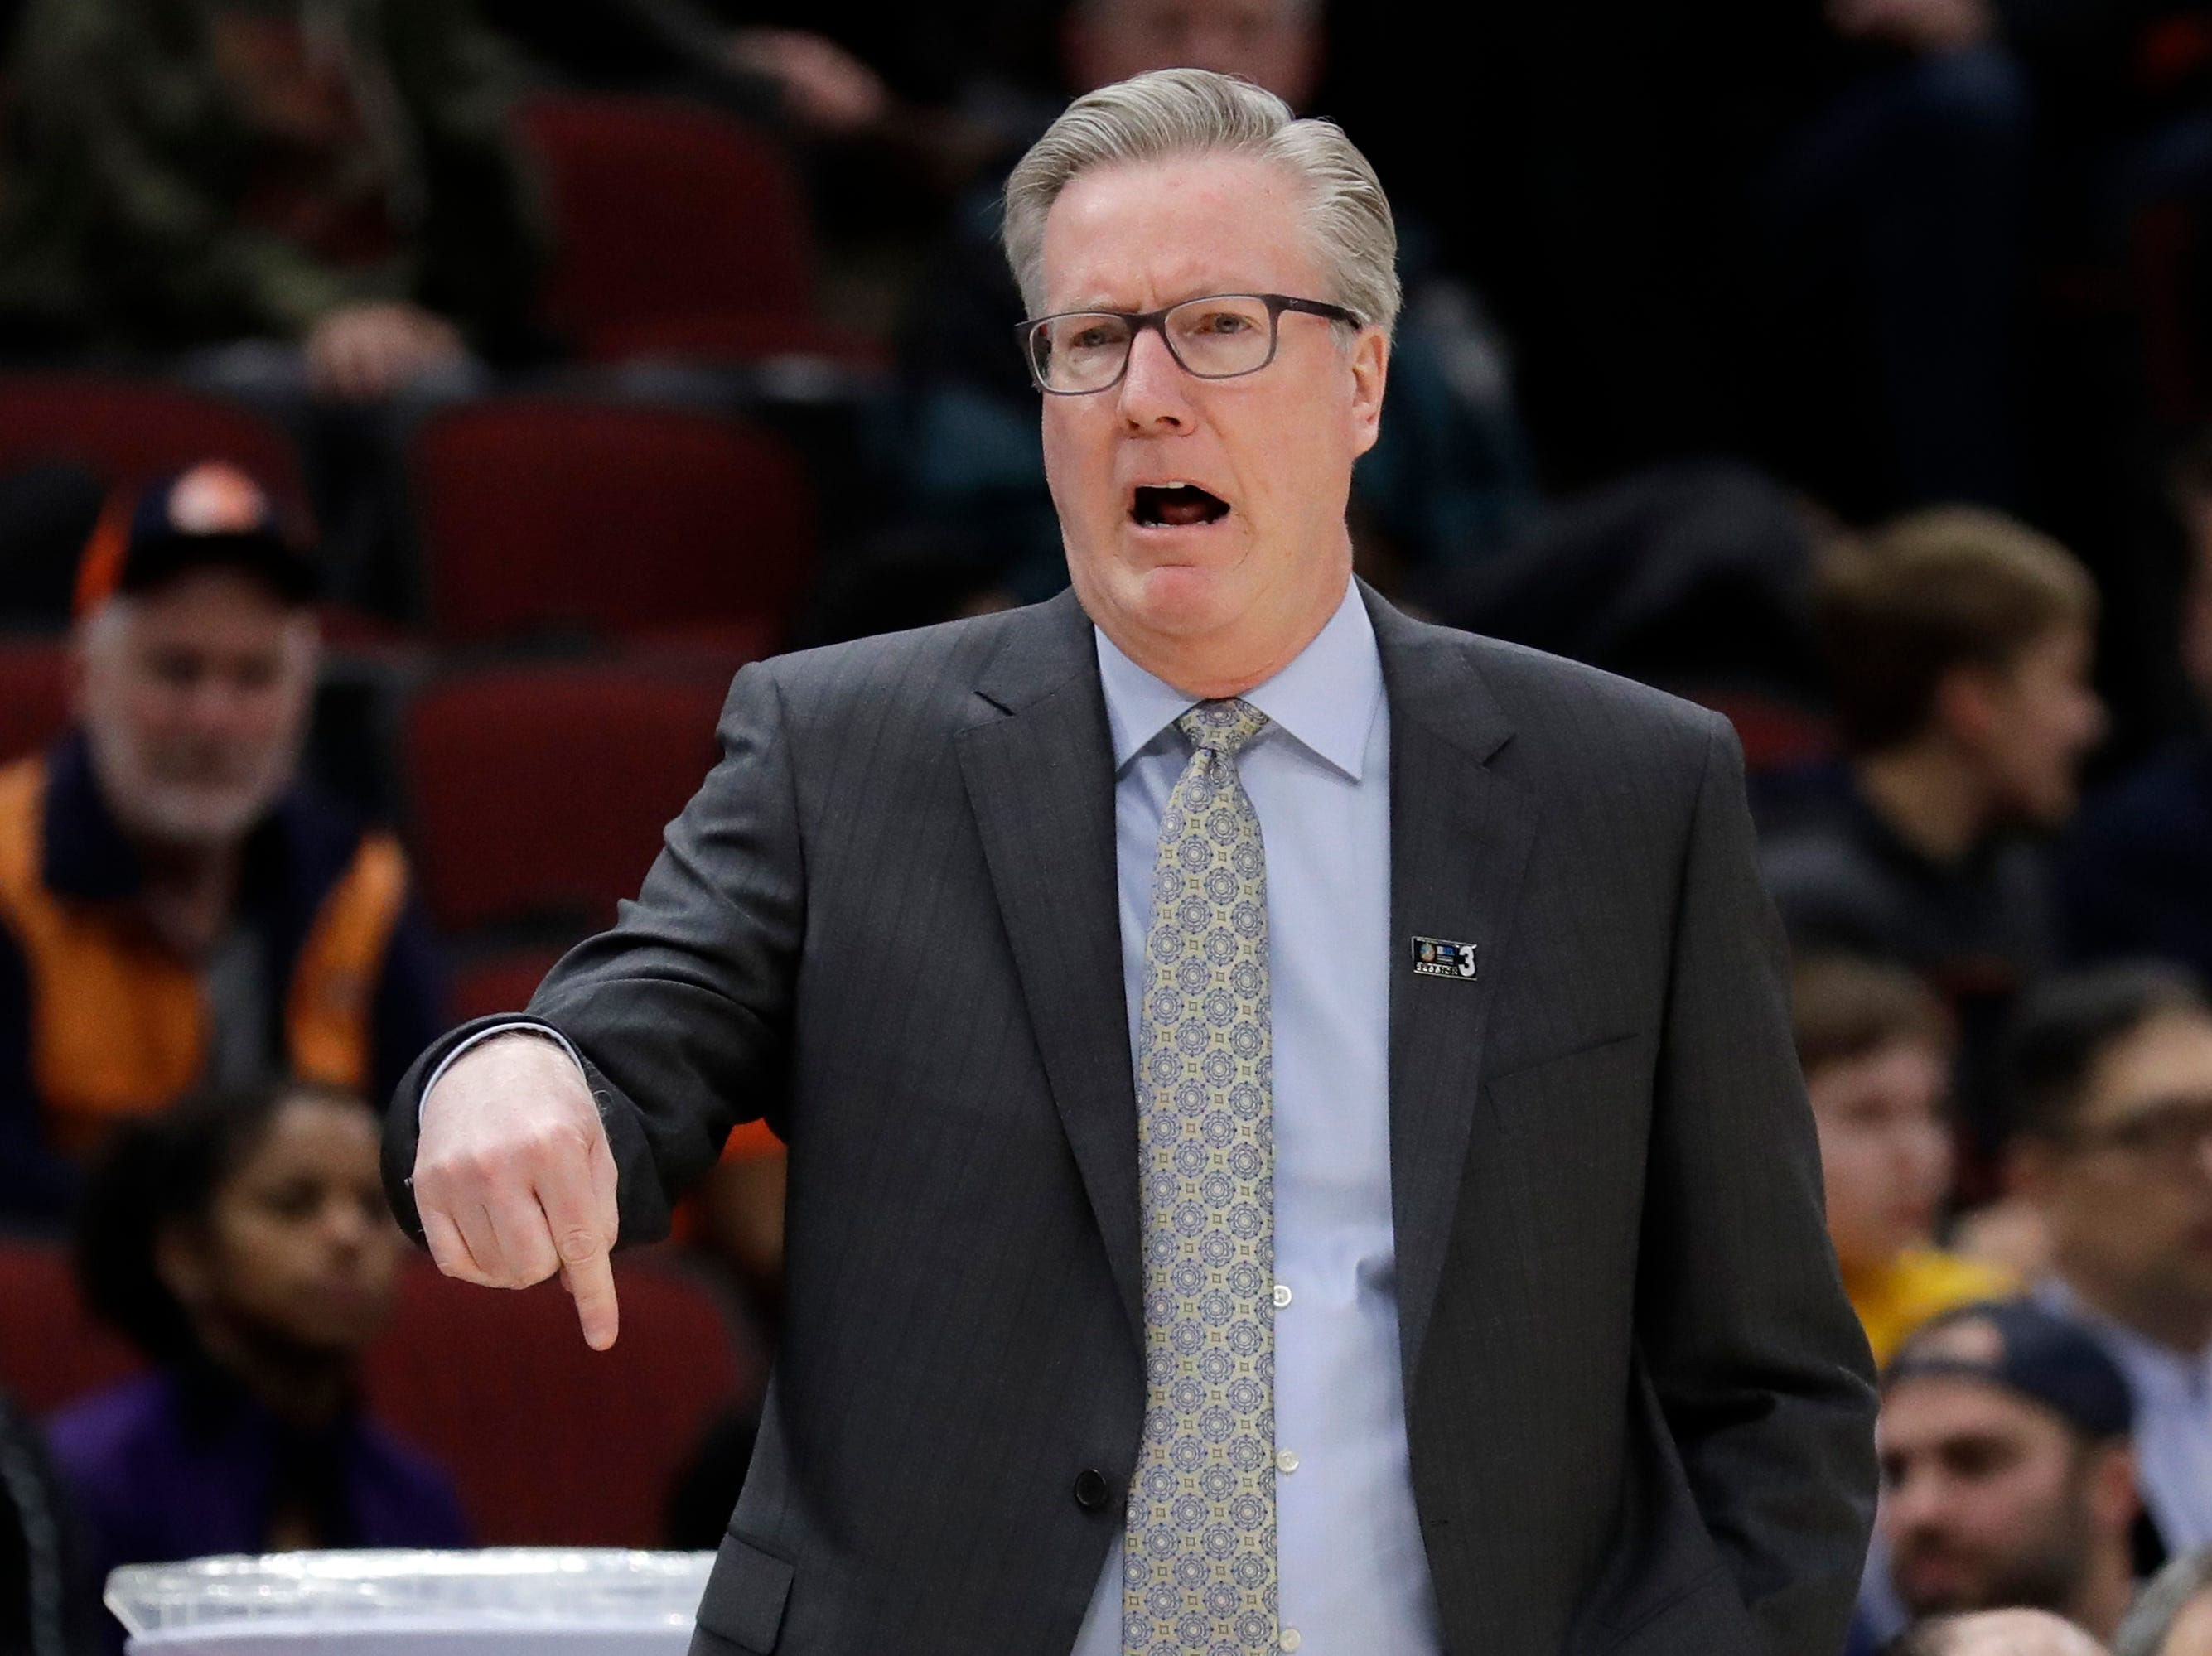 Iowa head coach Fran McCaffery directs his team during the first half of an NCAA college basketball game against the Illinois in the second round of the Big Ten Conference tournament, Thursday, March 14, 2019, in Chicago. (AP Photo/Nam Y. Huh)